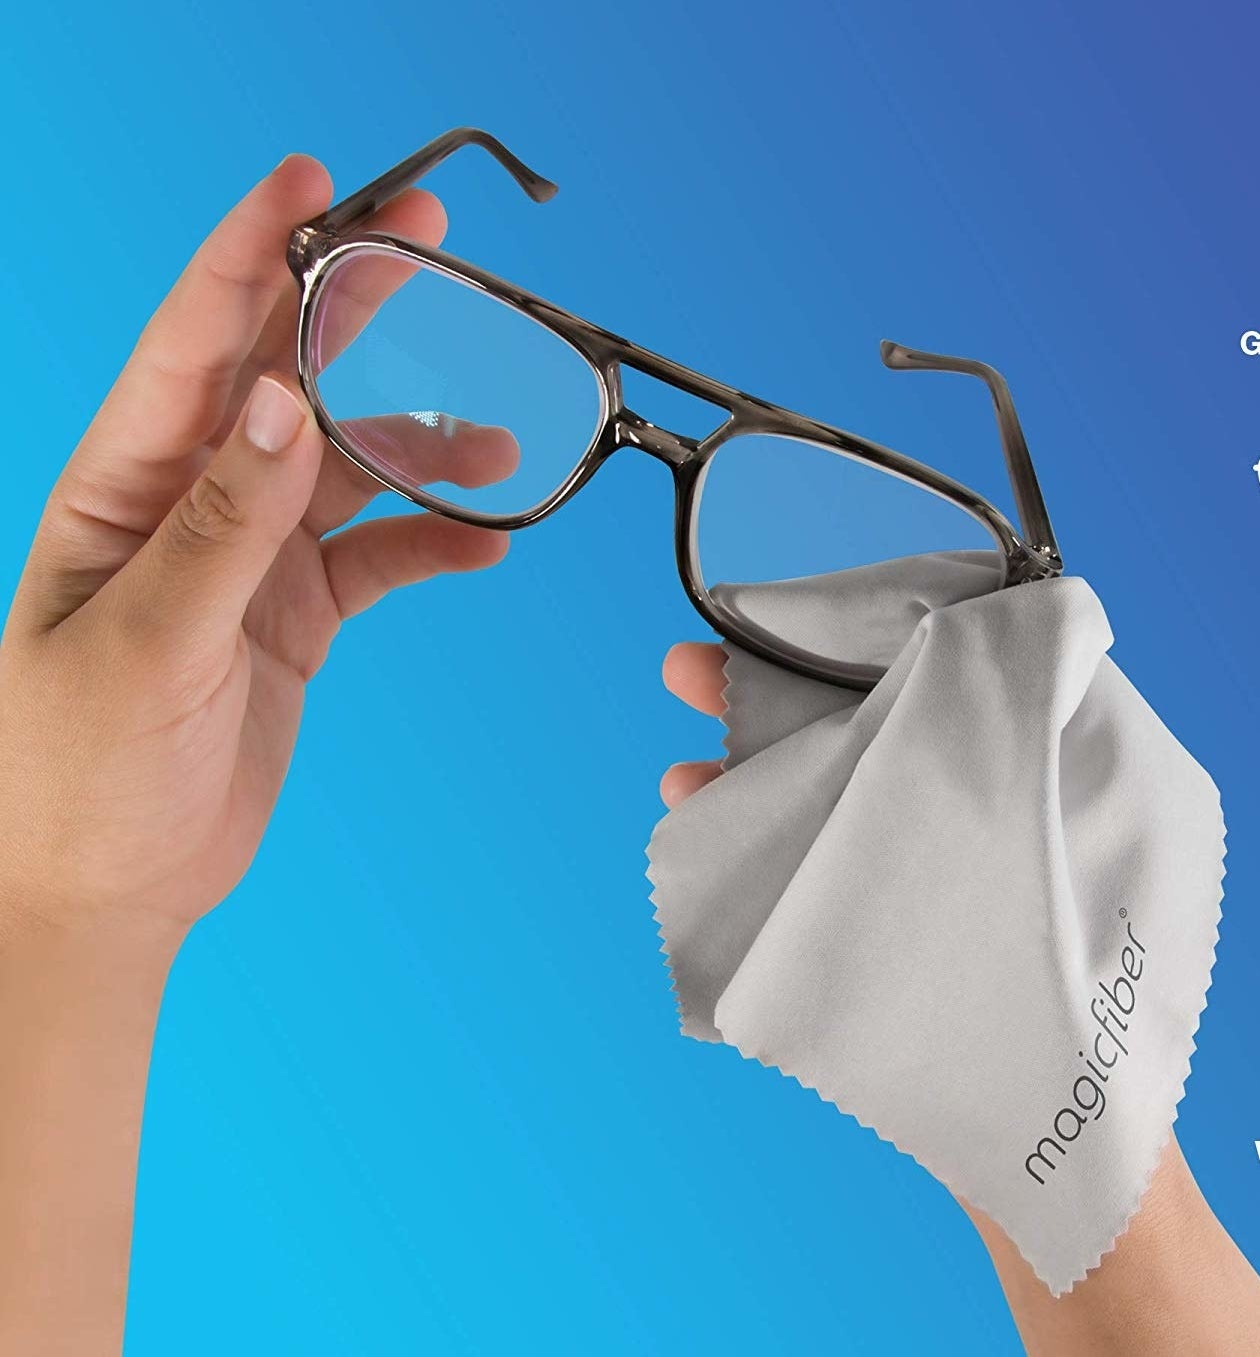 person cleaning glasses with microfiber cloth